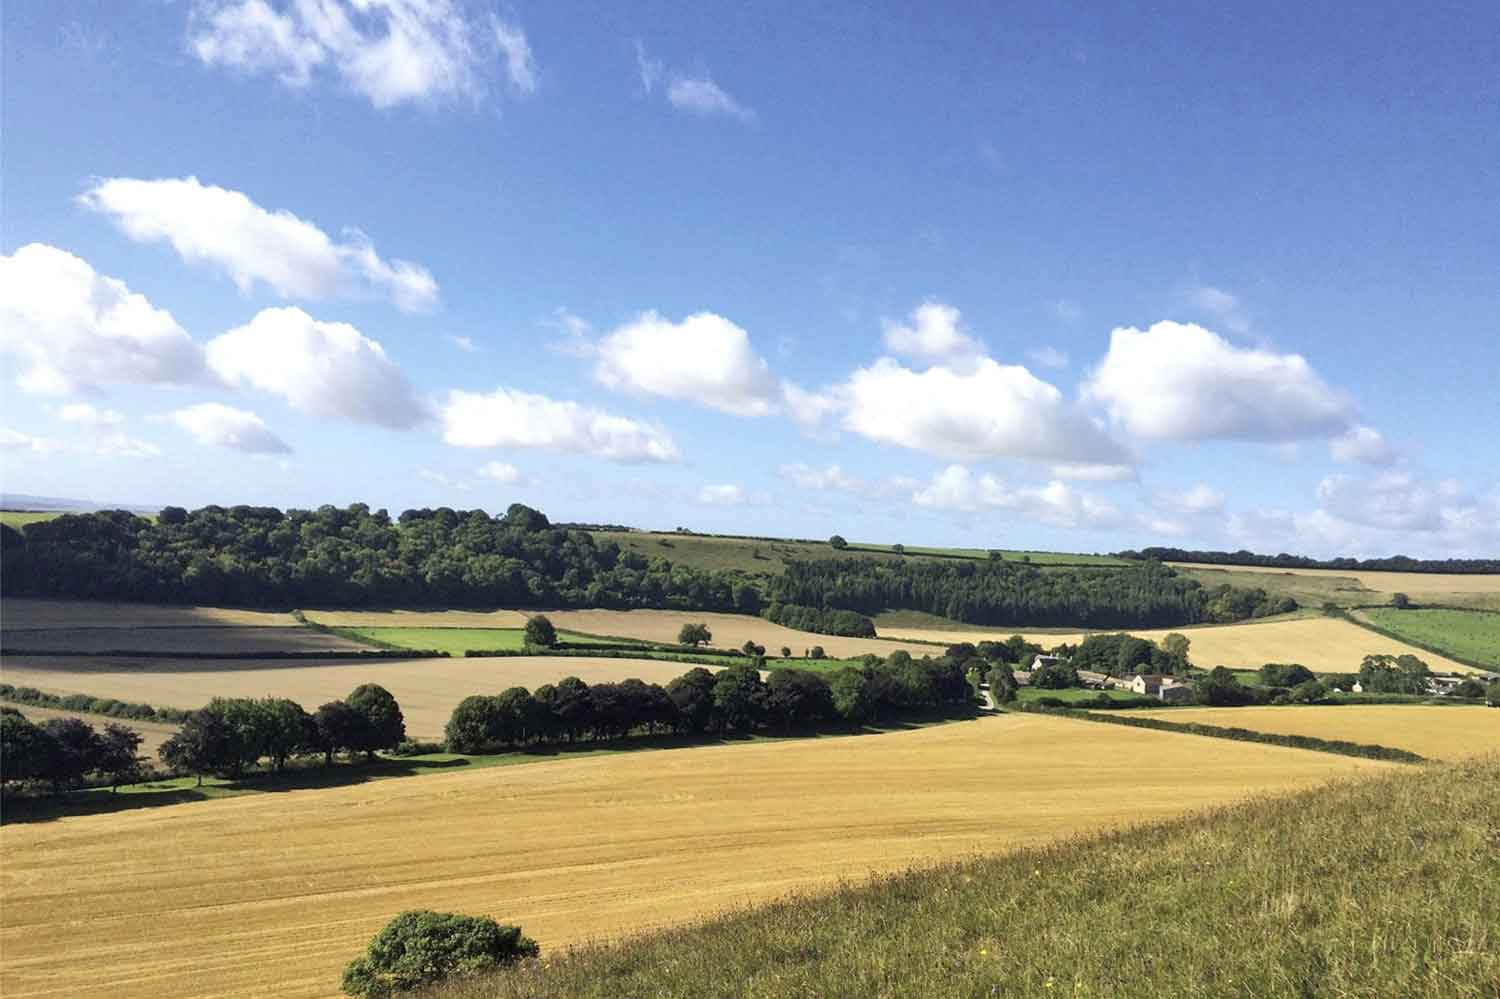 Melcombe Farm, in the beautiful English county of Dorset, encompasses 492 acres of land composed of arable fields, pastures, and woodland, with a fine period farmhouse, four cottages, and modern farm buildings.